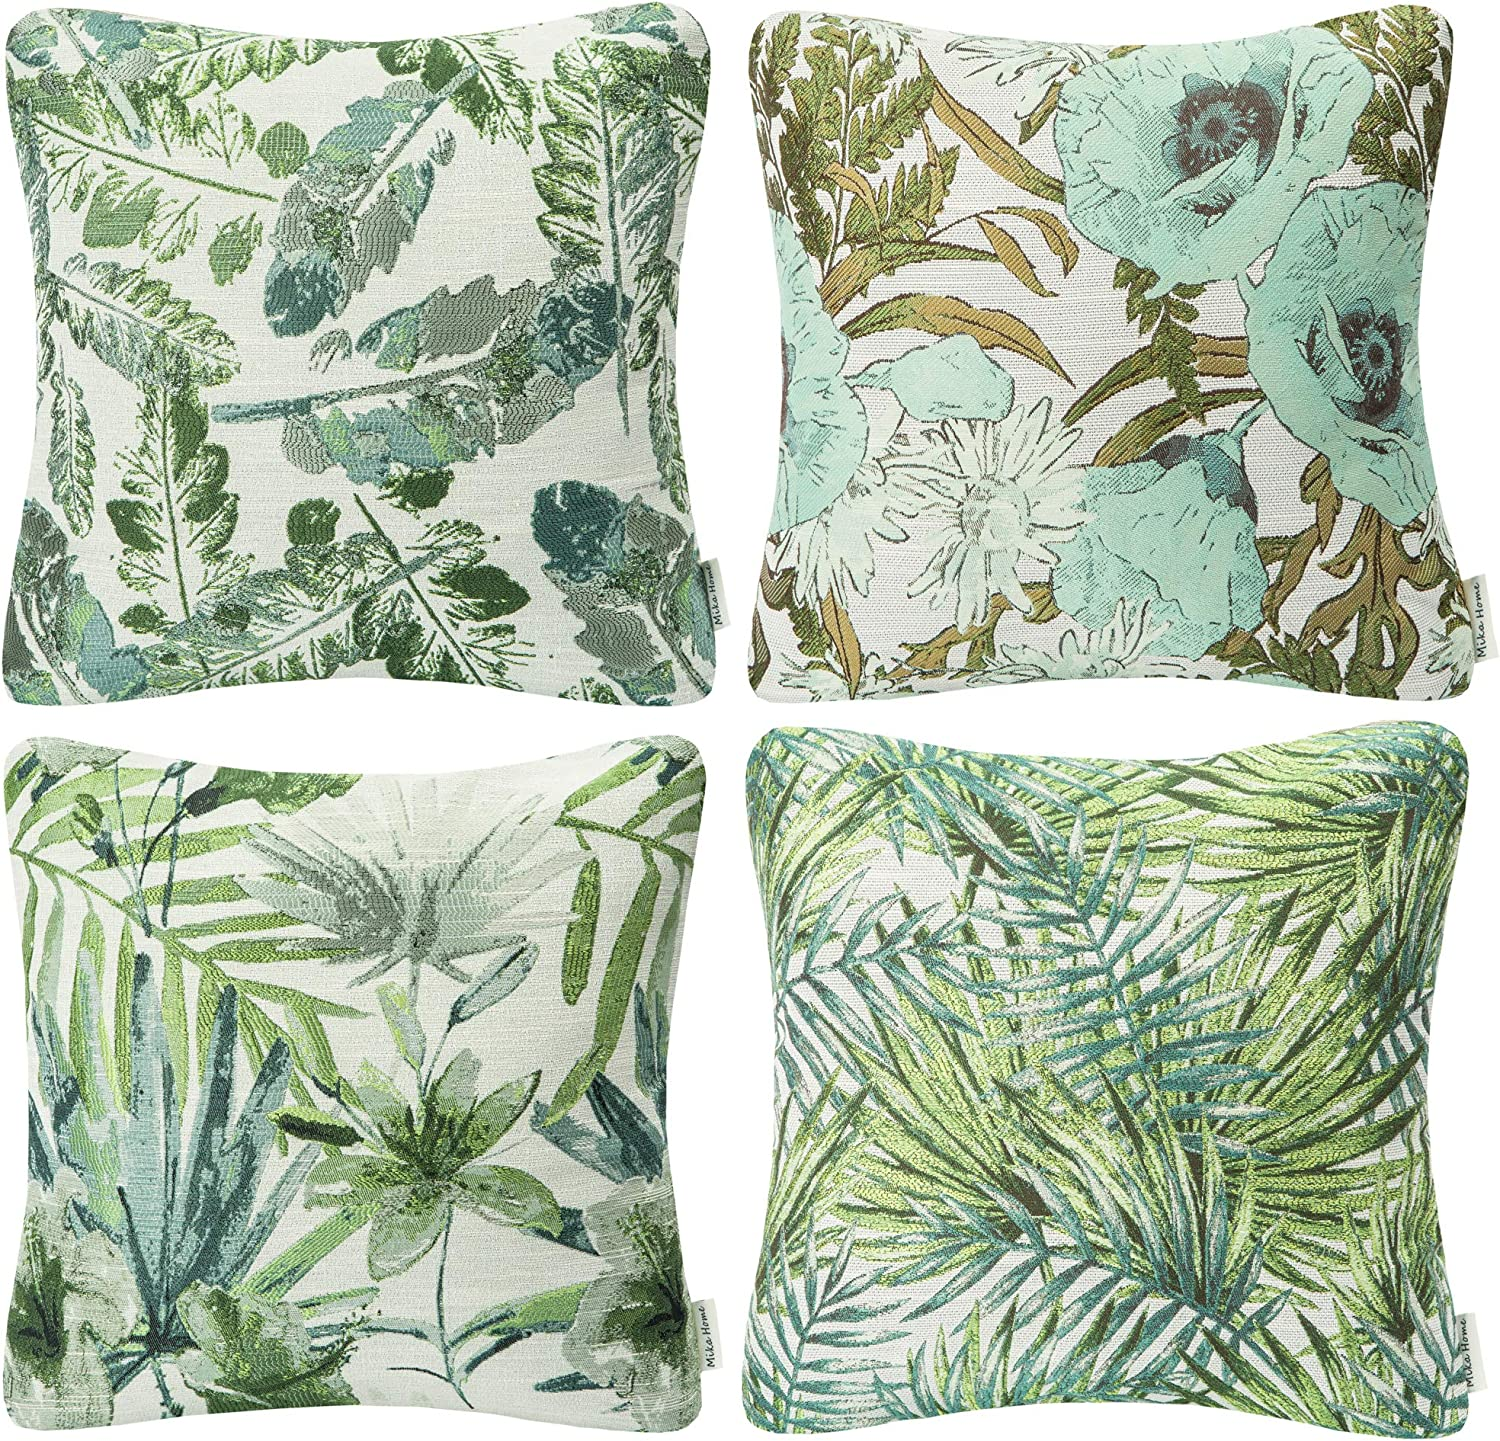 """Mika Home Set of 4 Green Garden Series Throw Pillow Covers Pillow Cases for Sofa Couch Home Decorations Flowers and Leaves 18"""" x 18"""" 45cm x 45cm"""